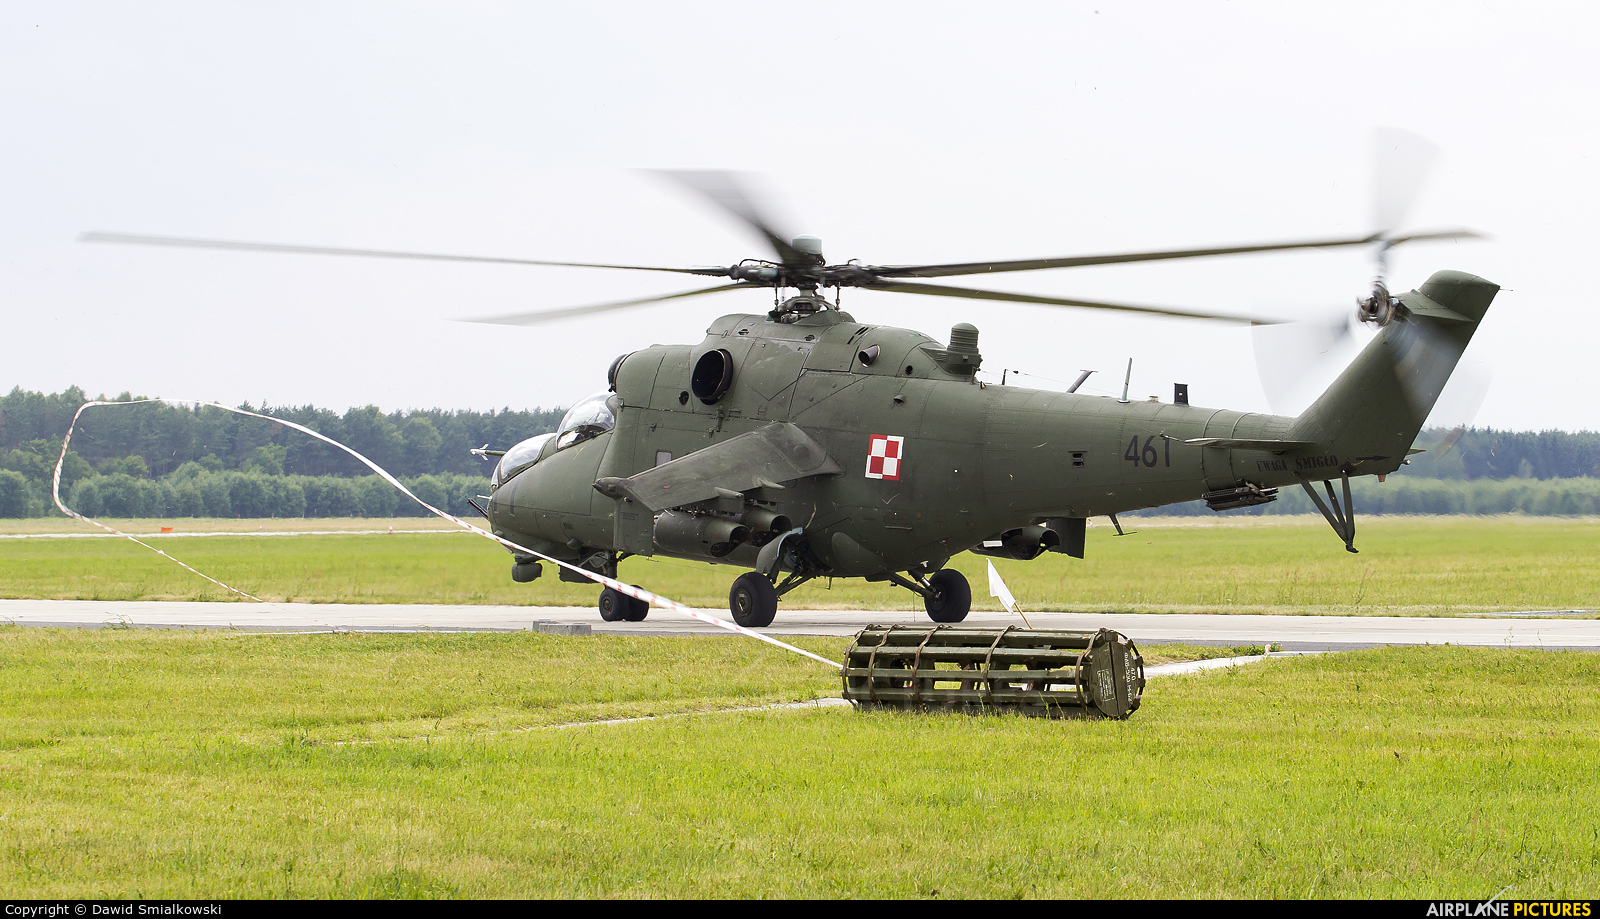 Poland - Army 461 aircraft at Świdwin